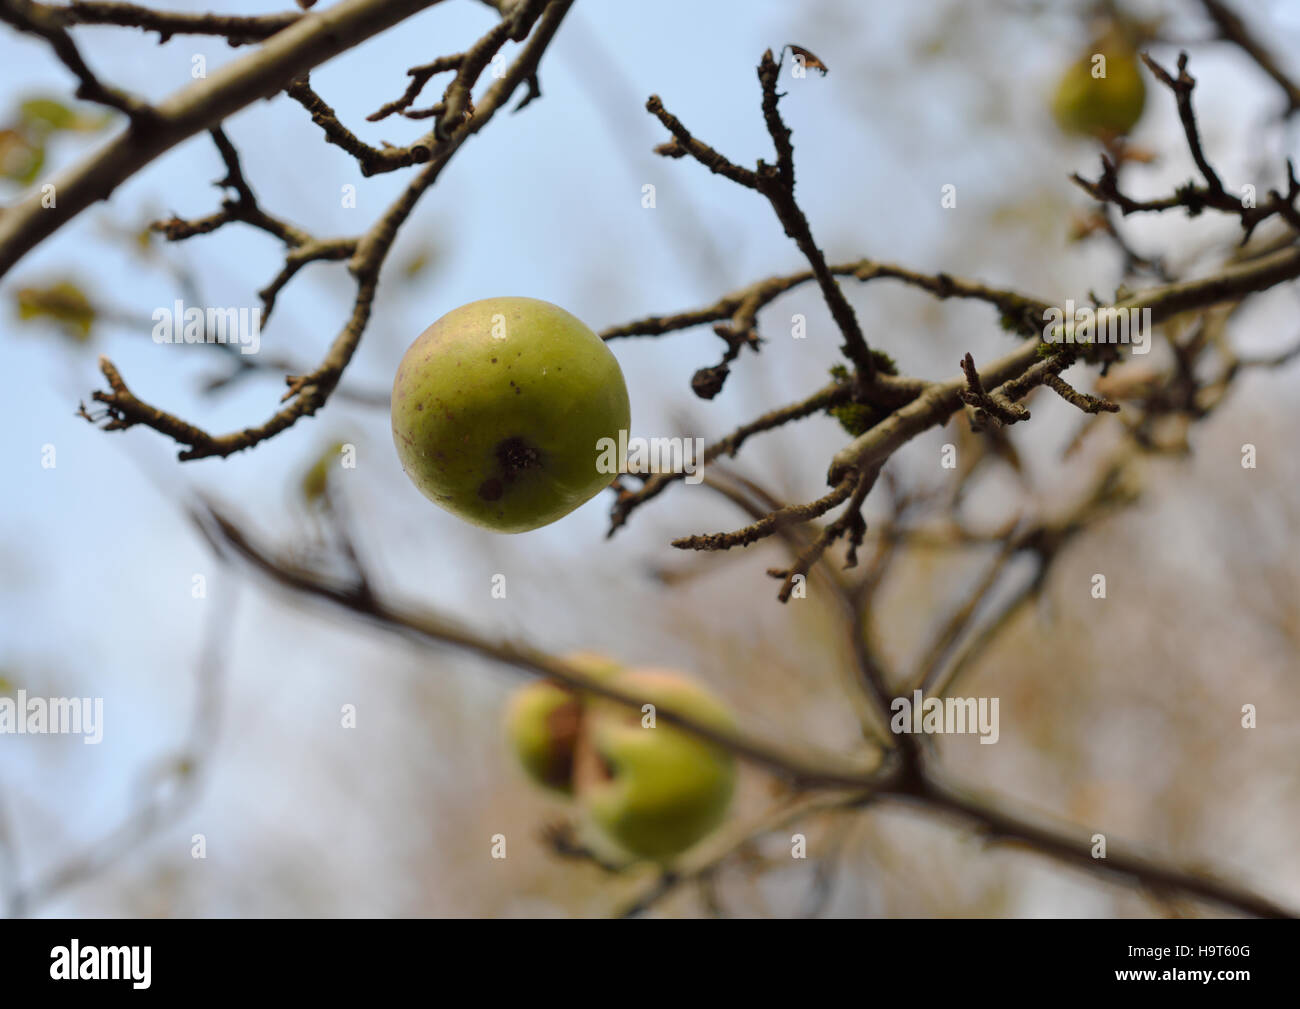 apples on tree - Stock Image